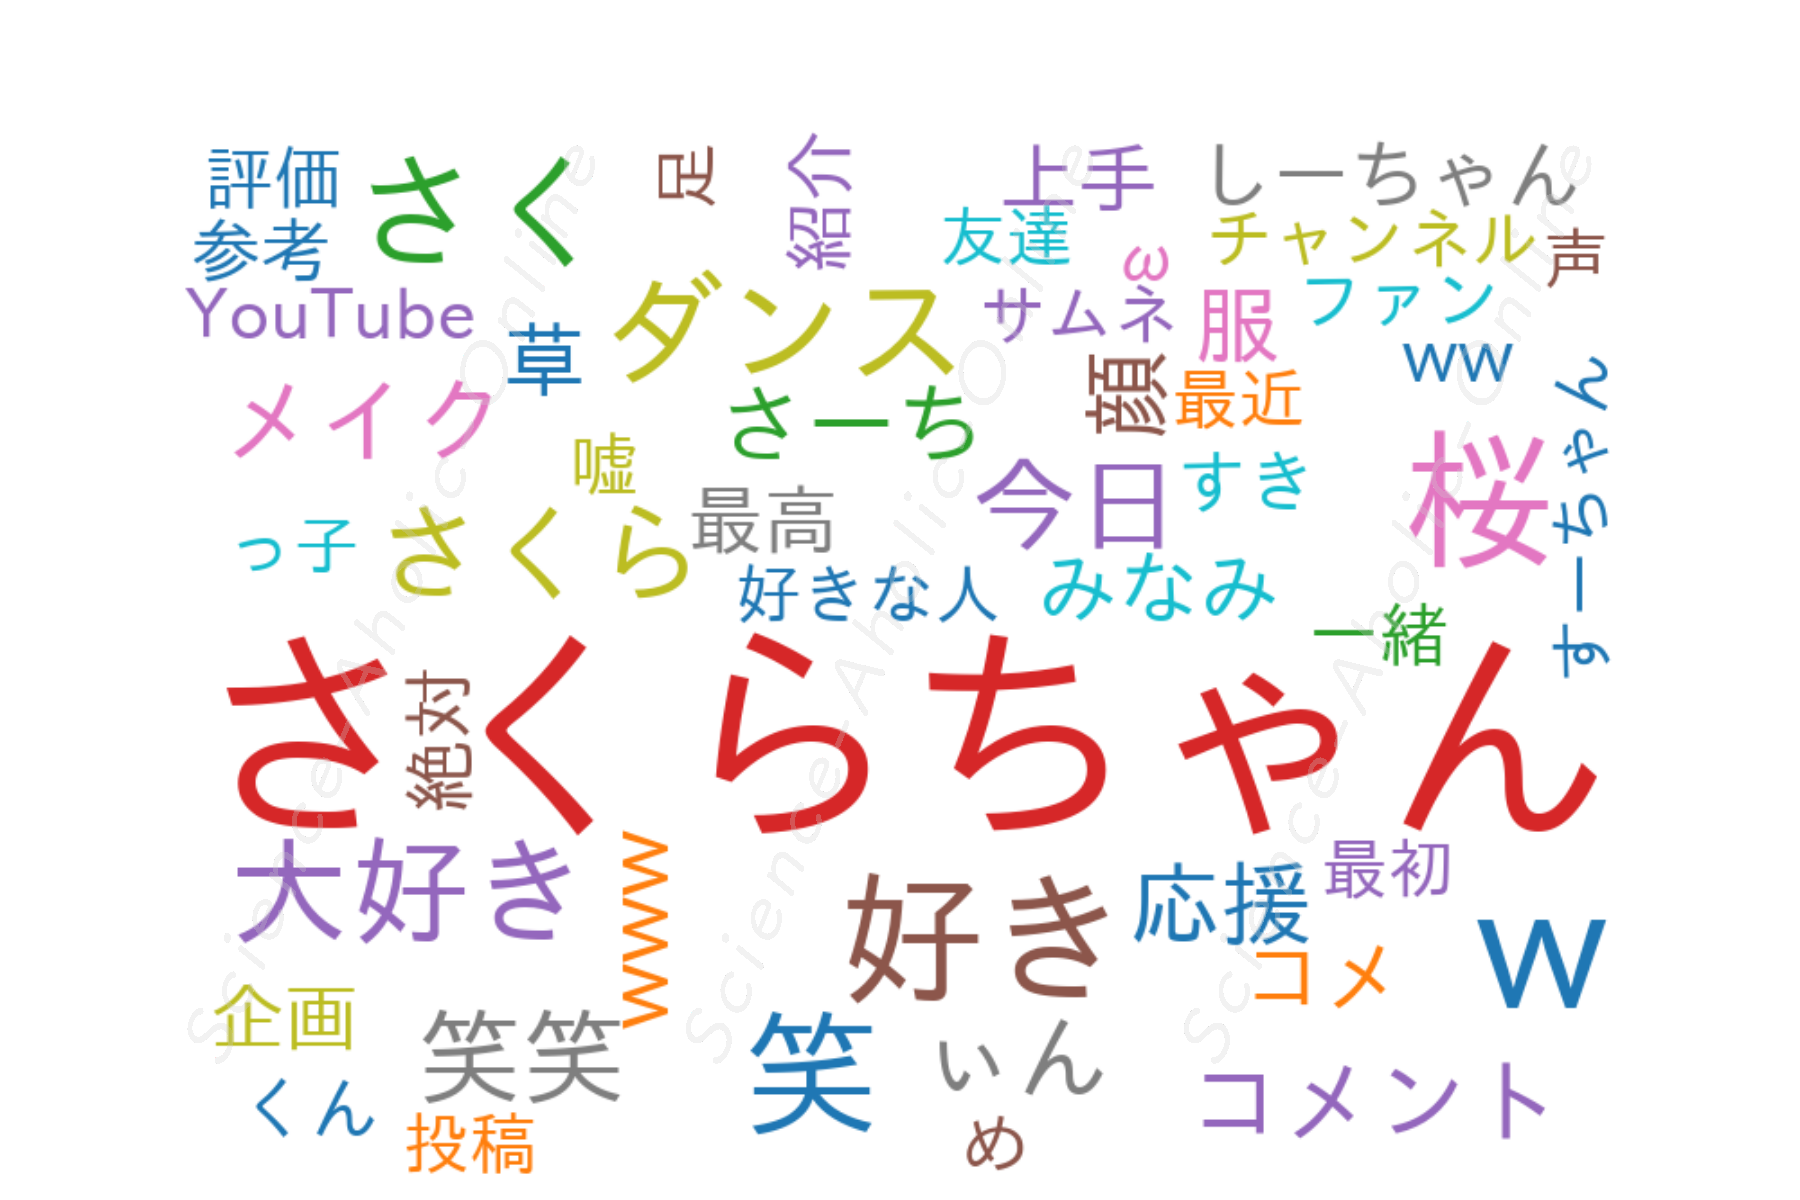 https://science-aholic-online.com/wp-content/uploads/2020/08/wordcloud_さくらチャンネル.png